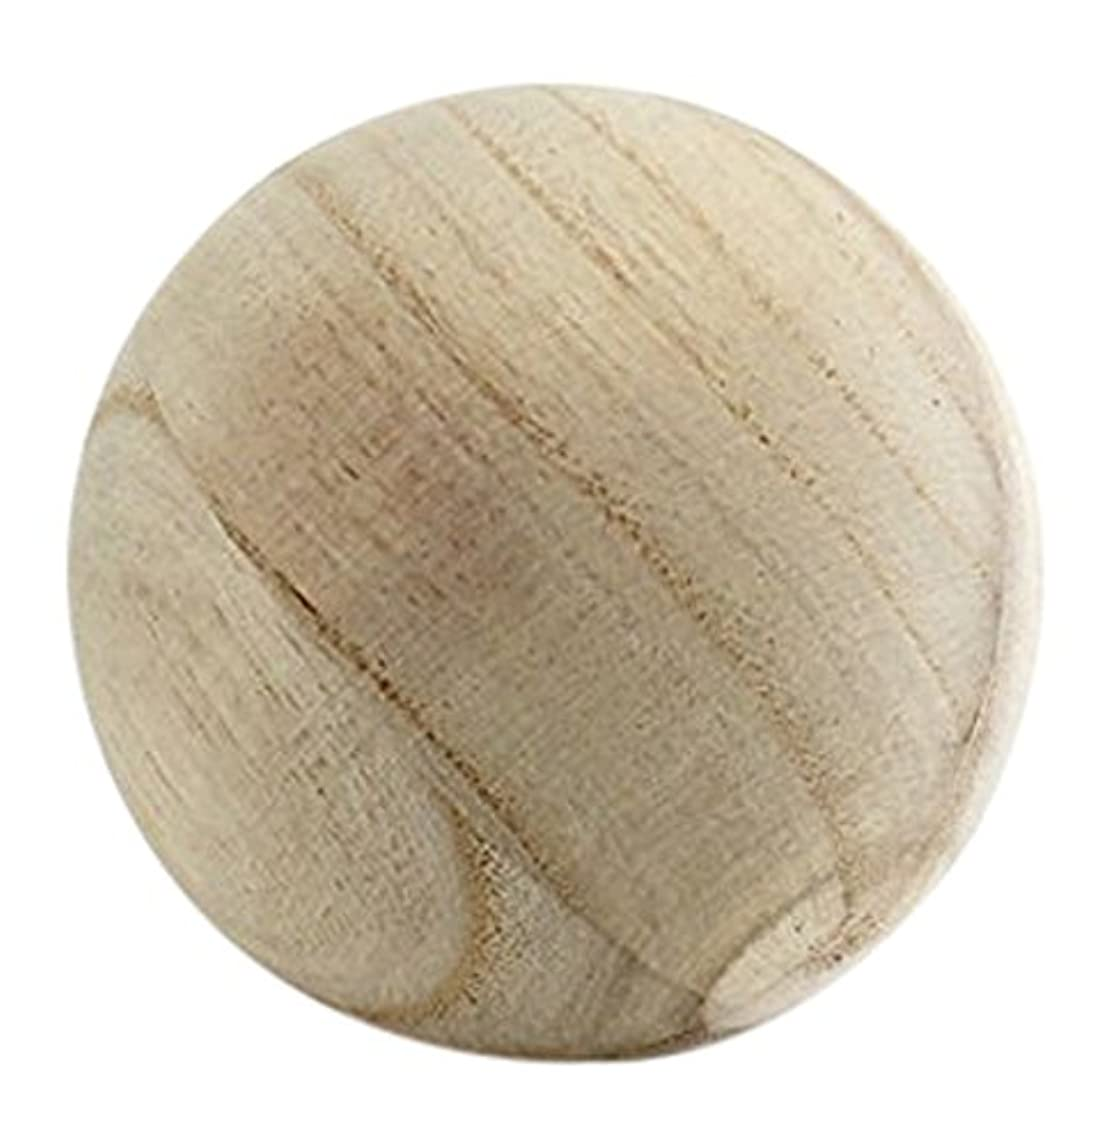 CYS EXCEL Natural Round Wood Ball, Round Wood Unfinished for DIY Jewelry Making, Wood Craft Balls for Art Design, 5 Inch Dimension, Pack of 2 jikzemmszw8